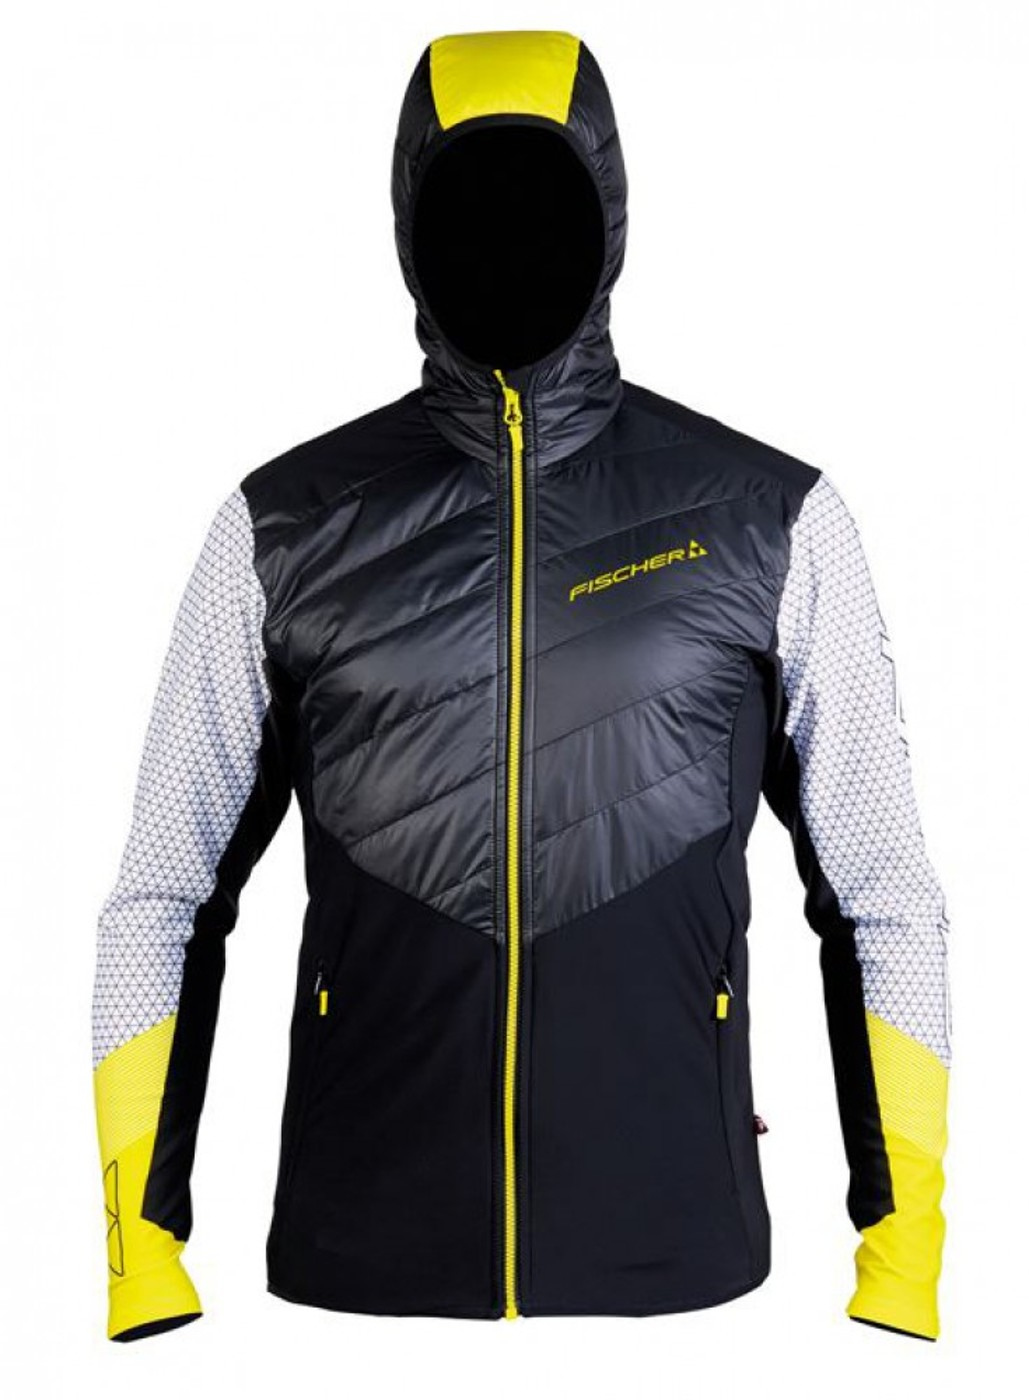 FISCHER STRETCH HYBRID JACKET - WISLA